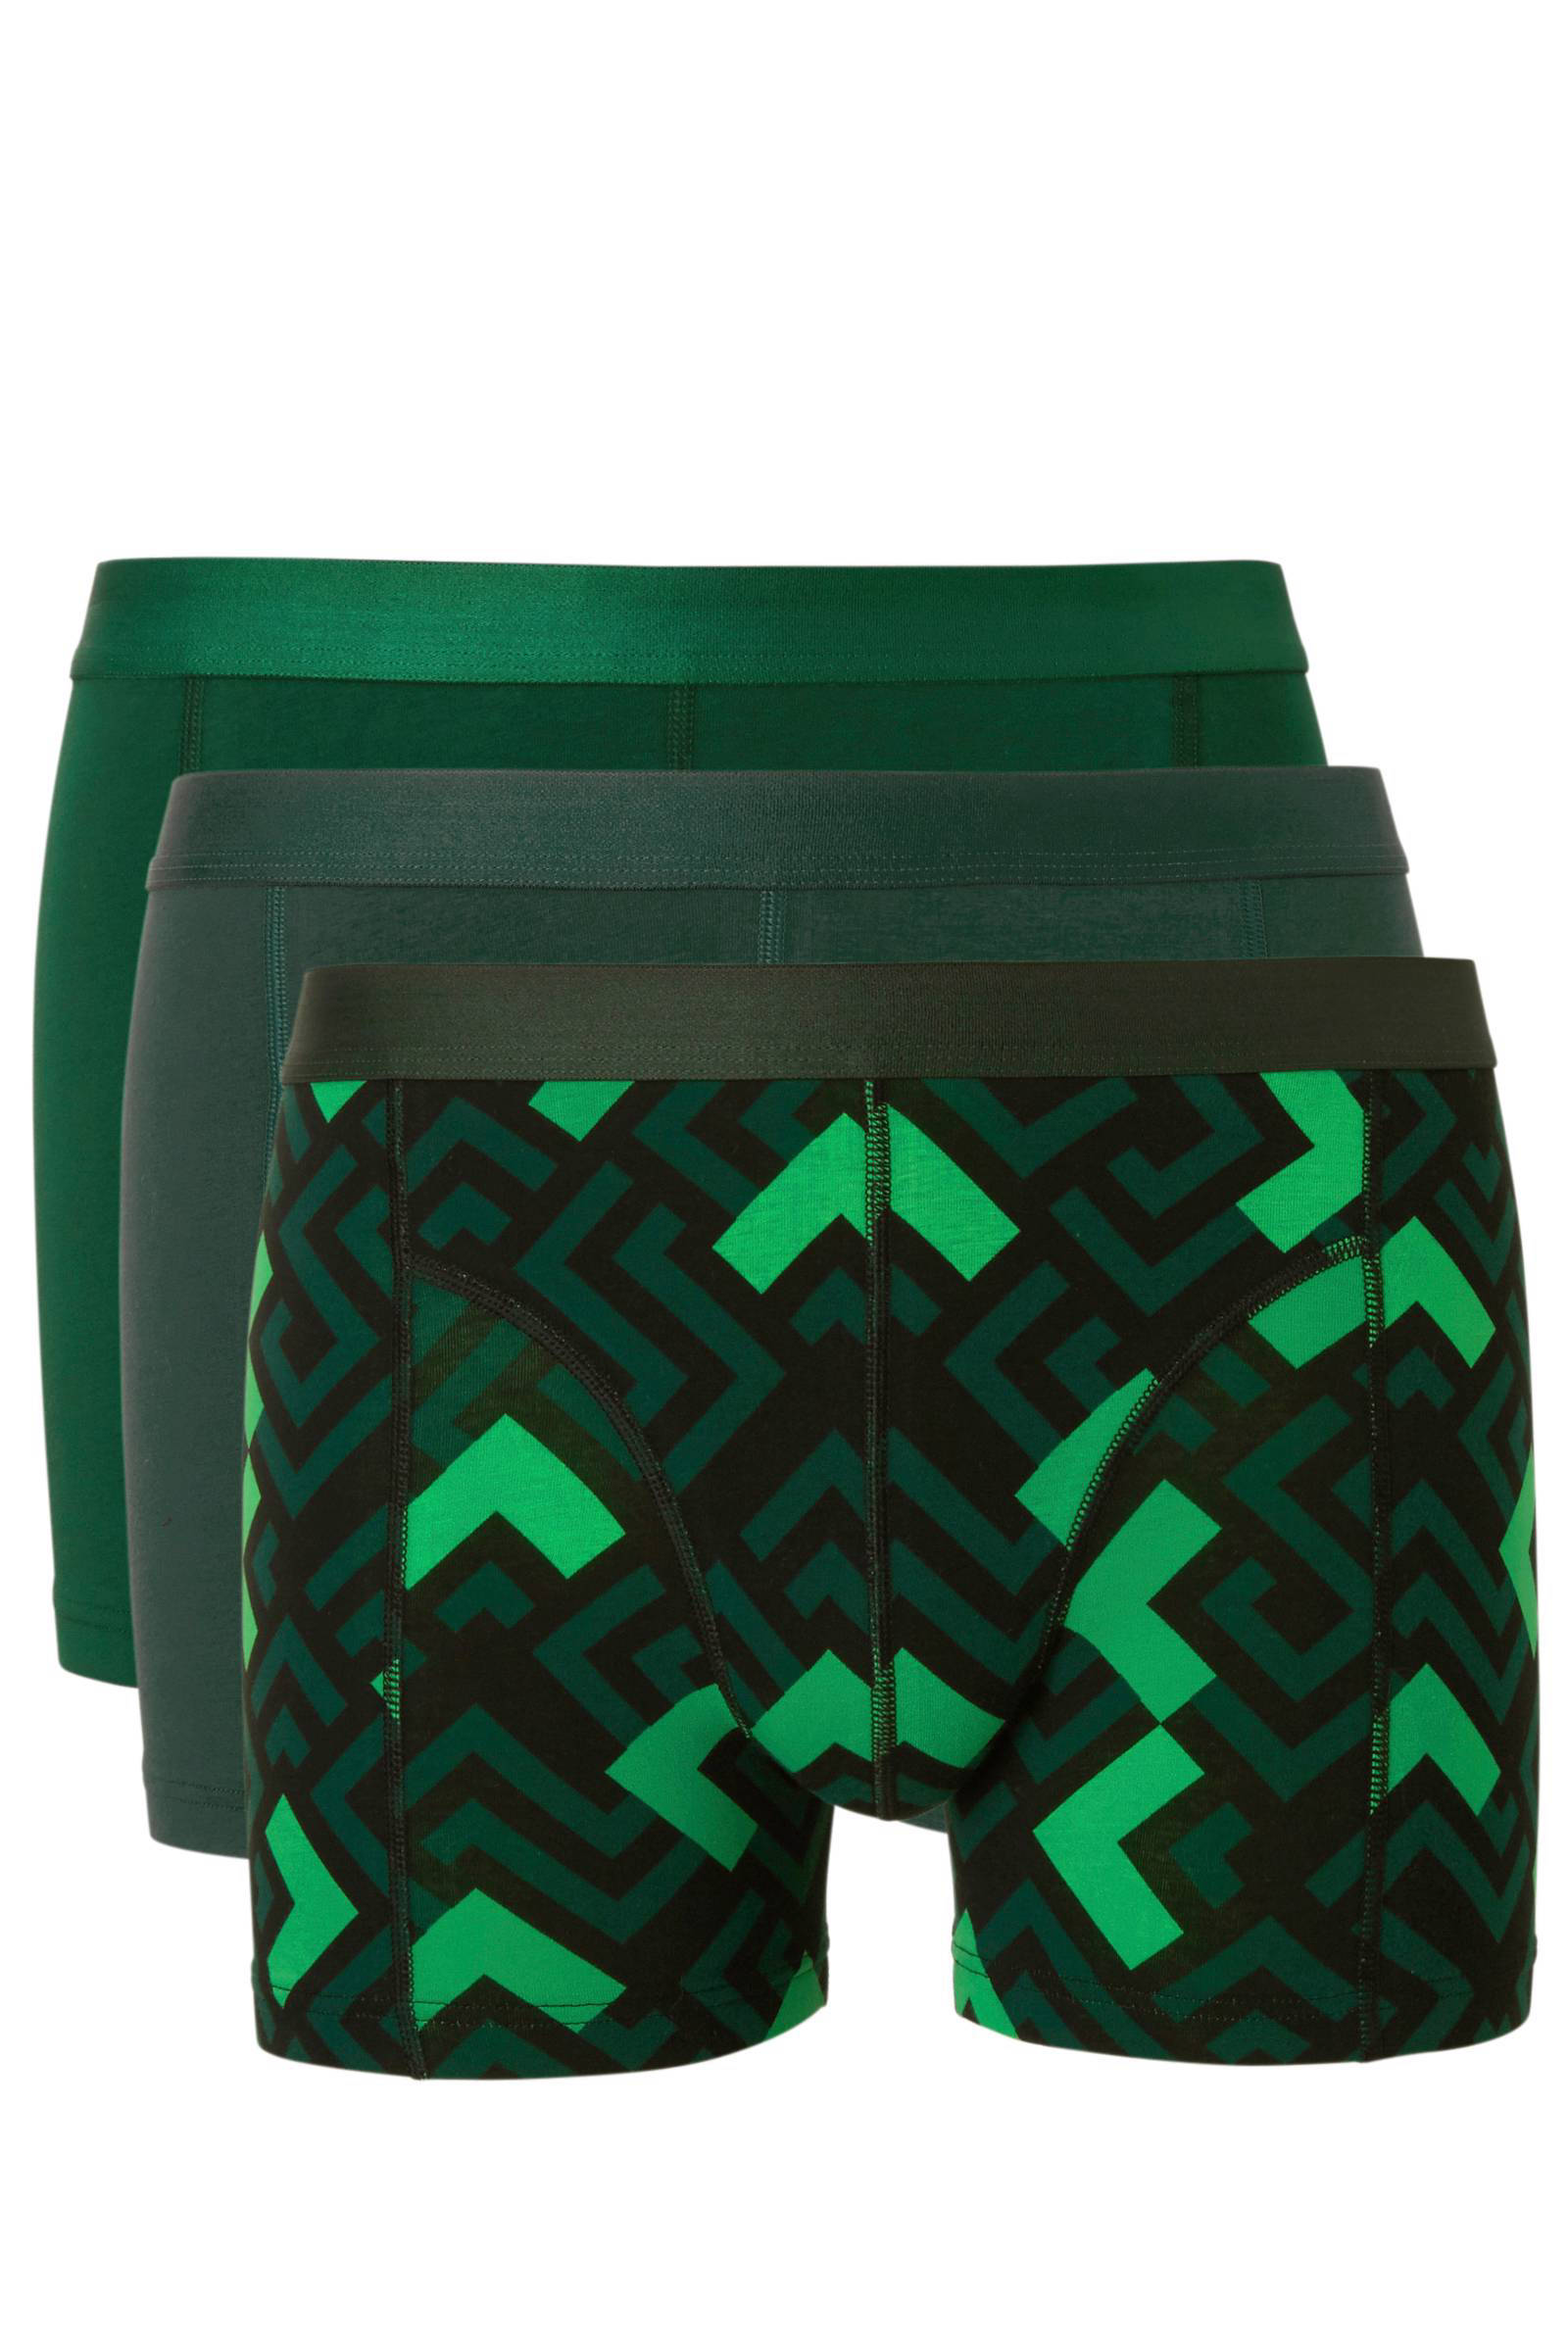 whkmp's own boxershort (set van 3) (heren)